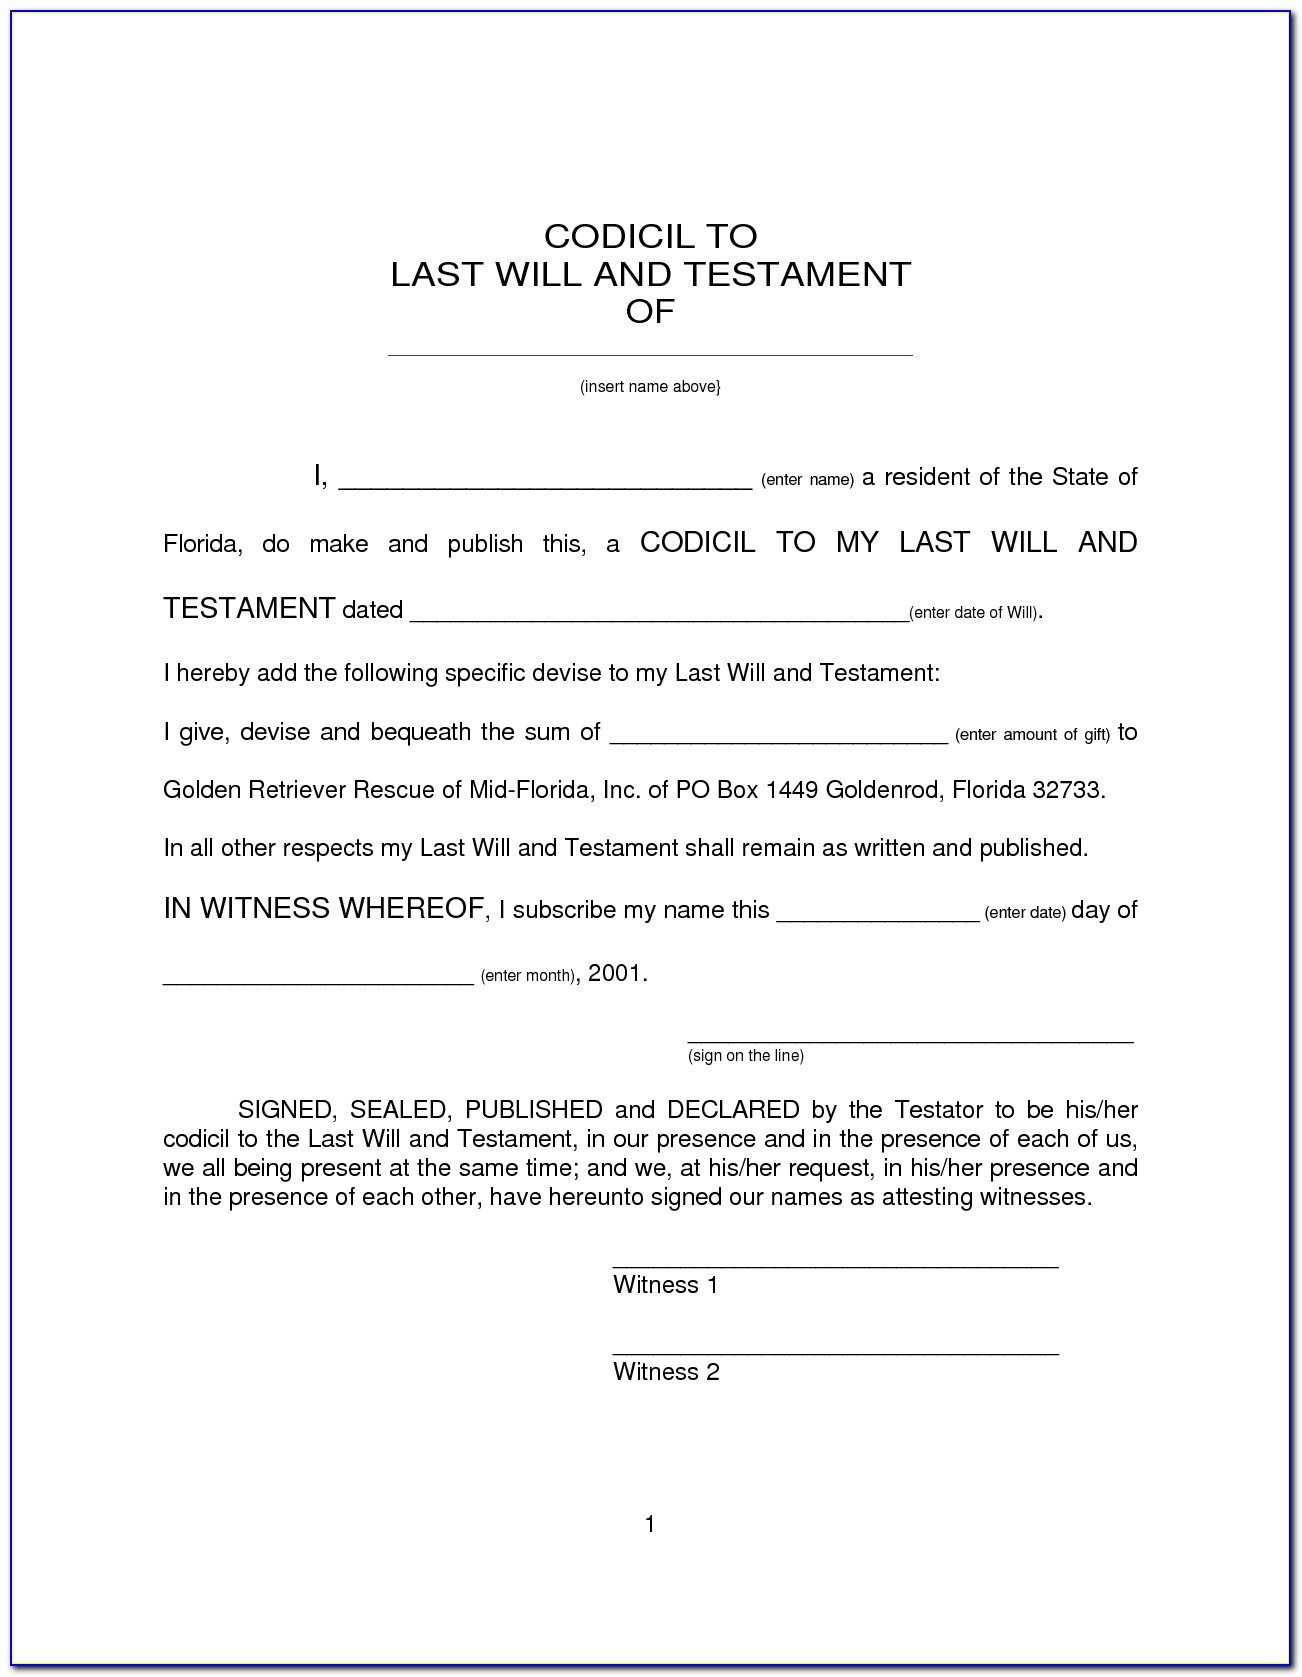 Last Will And Testament Template (6)   Best Agenda Templates Within - Free Printable Last Will And Testament Blank Forms Florida